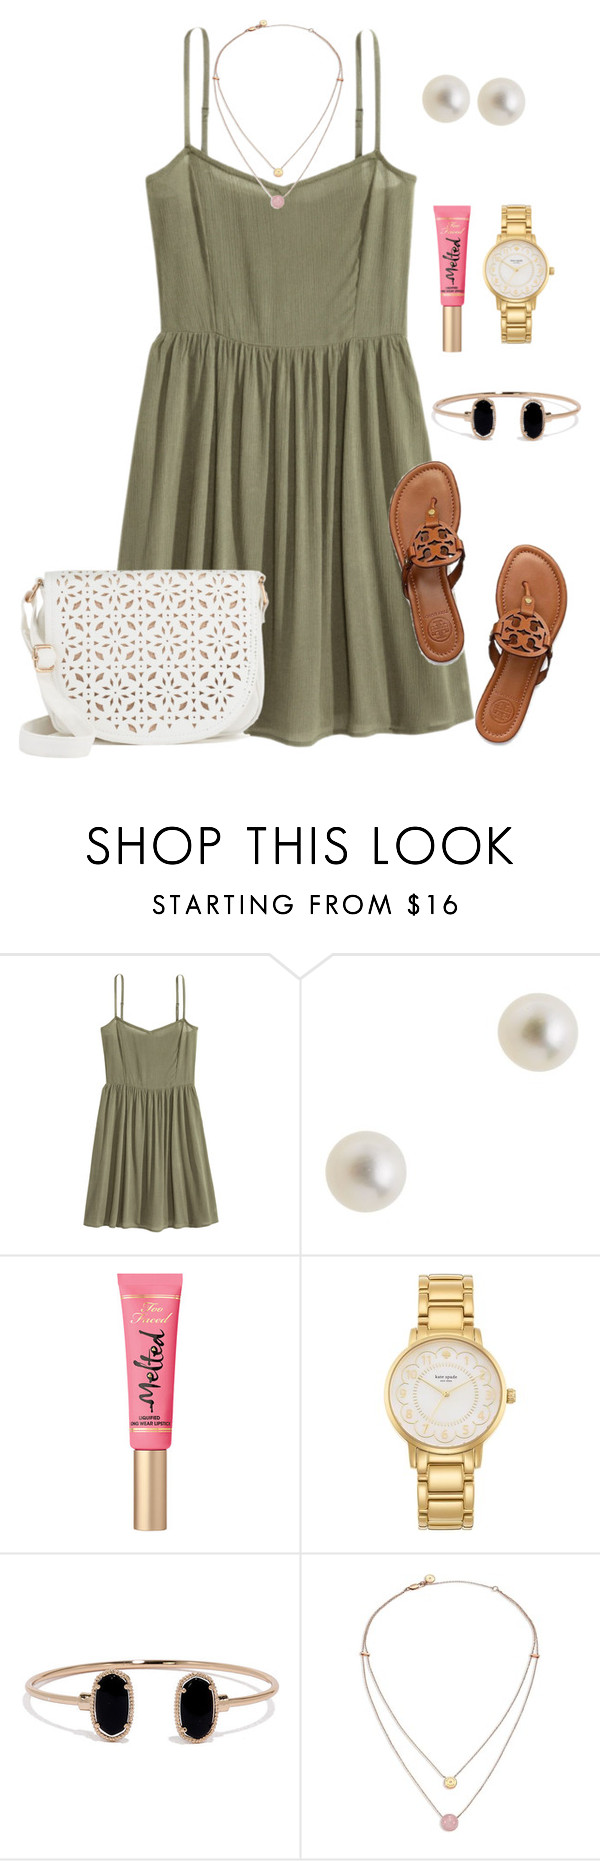 """""""Preppy otd"""" by christyaphan ❤ liked on Polyvore featuring J.Crew, Too Faced Cosmetics, Kate Spade, LULUS, Michael Kors and Under One Sky"""